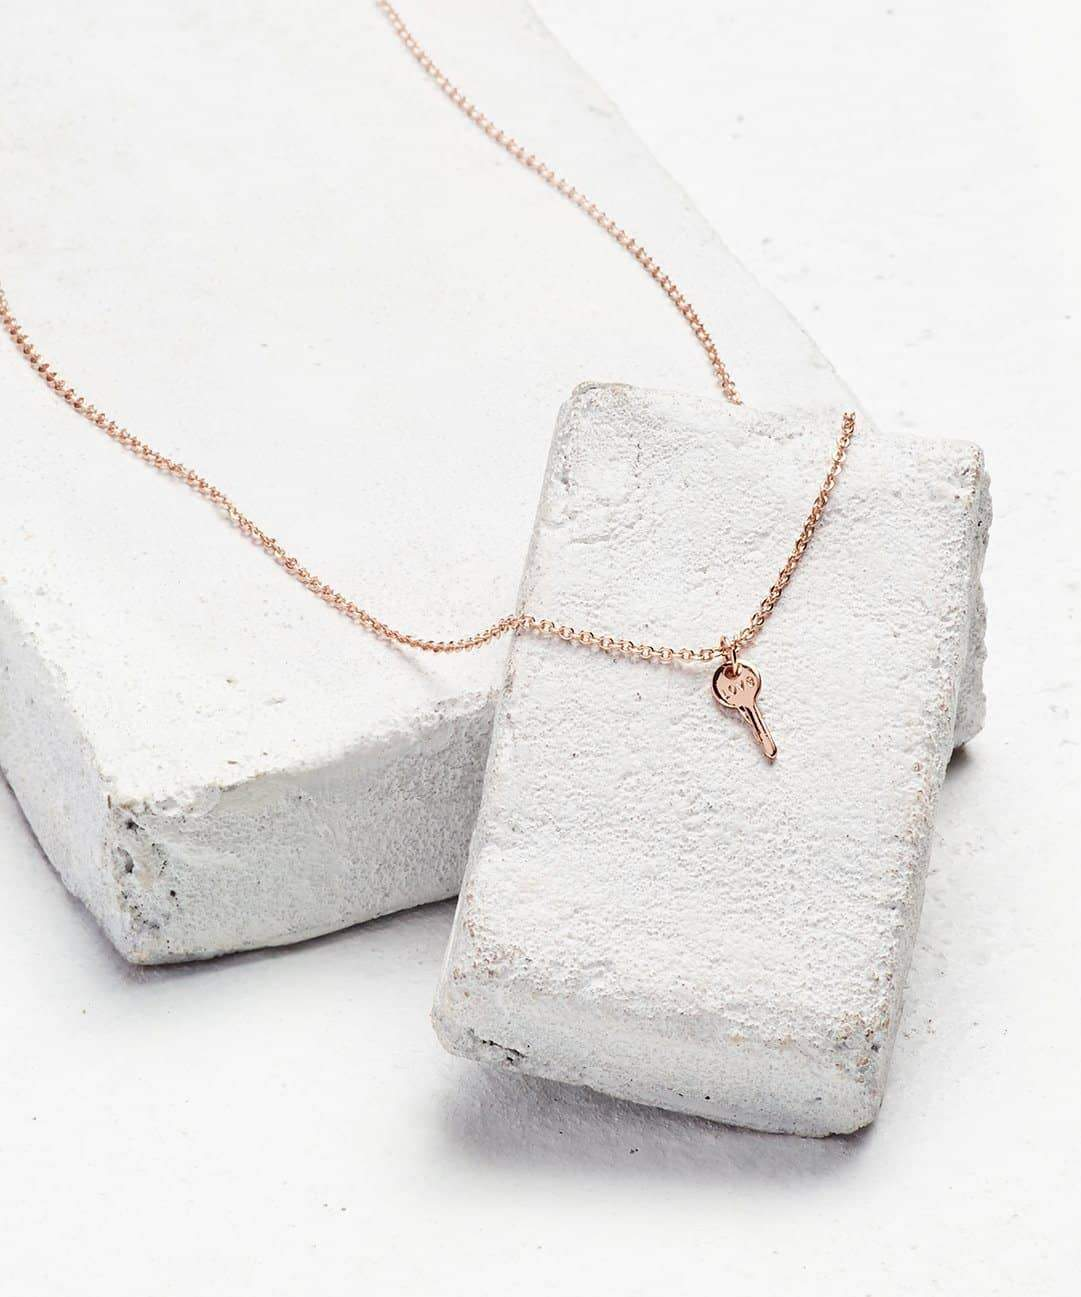 Rose Gold Mini Key Pendant Necklace Necklaces The Giving Keys LOVE Rose Gold